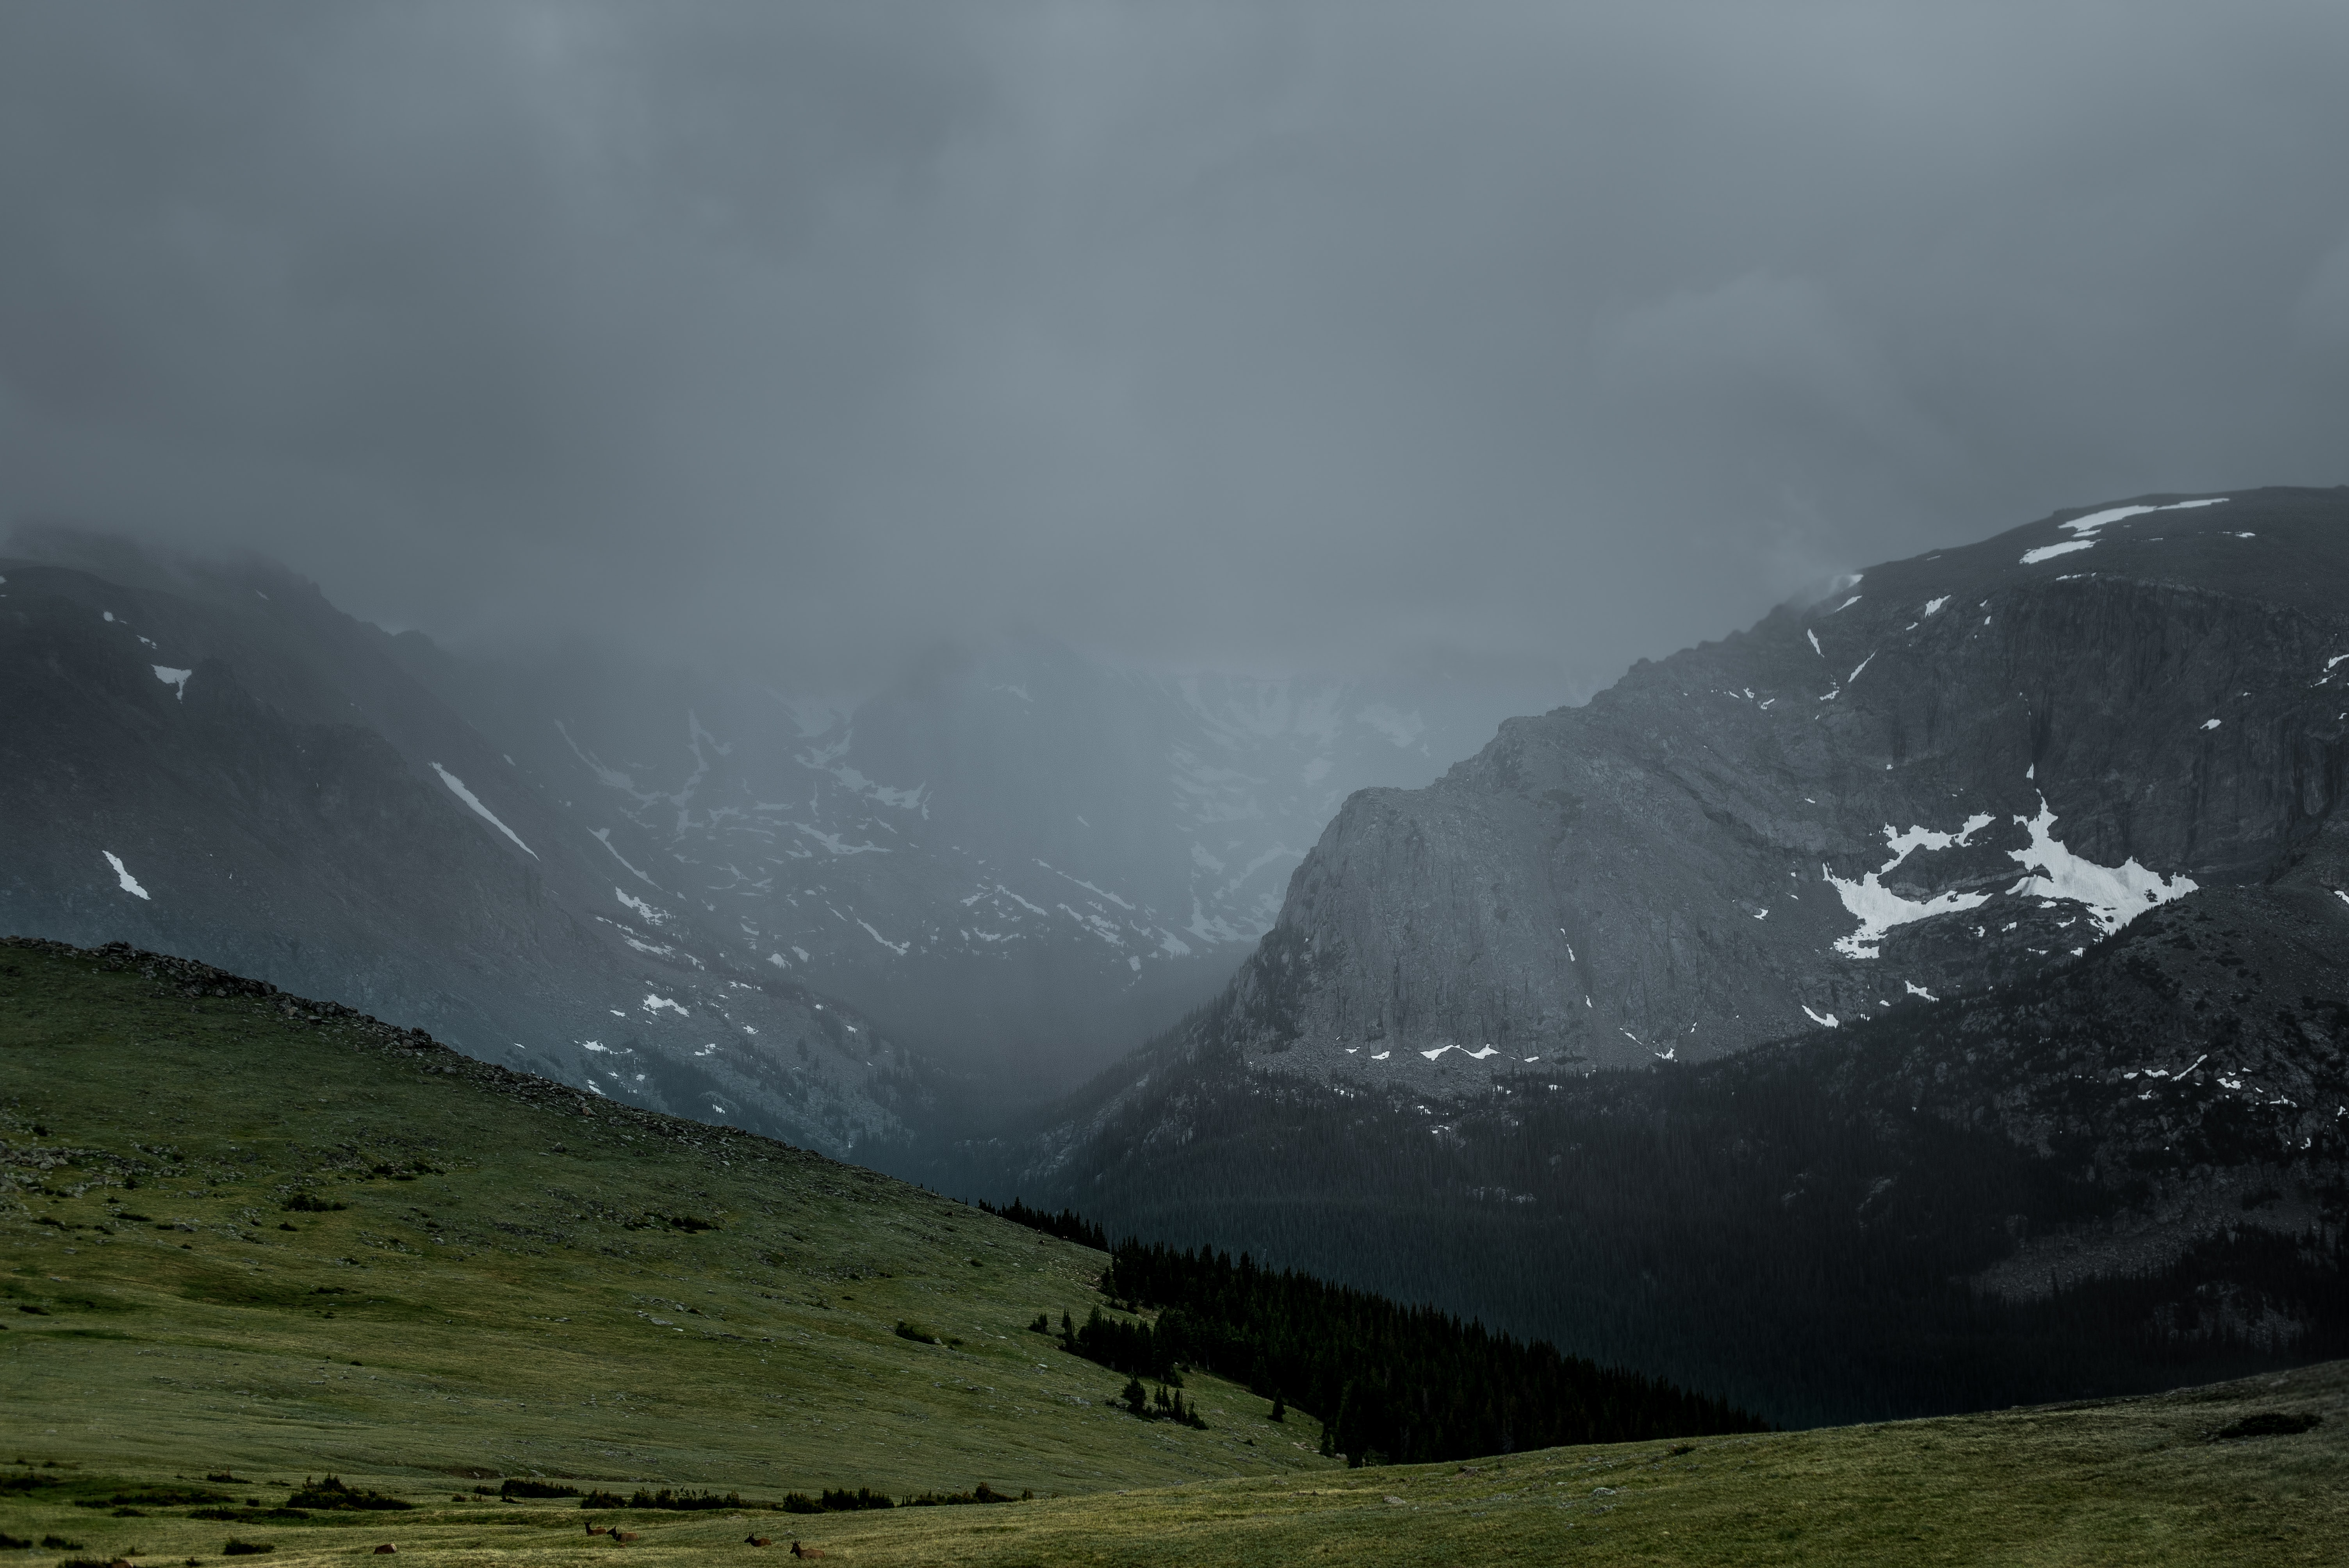 Dark clouds gathering over a mountain pass in the Rocky Mountain National Park